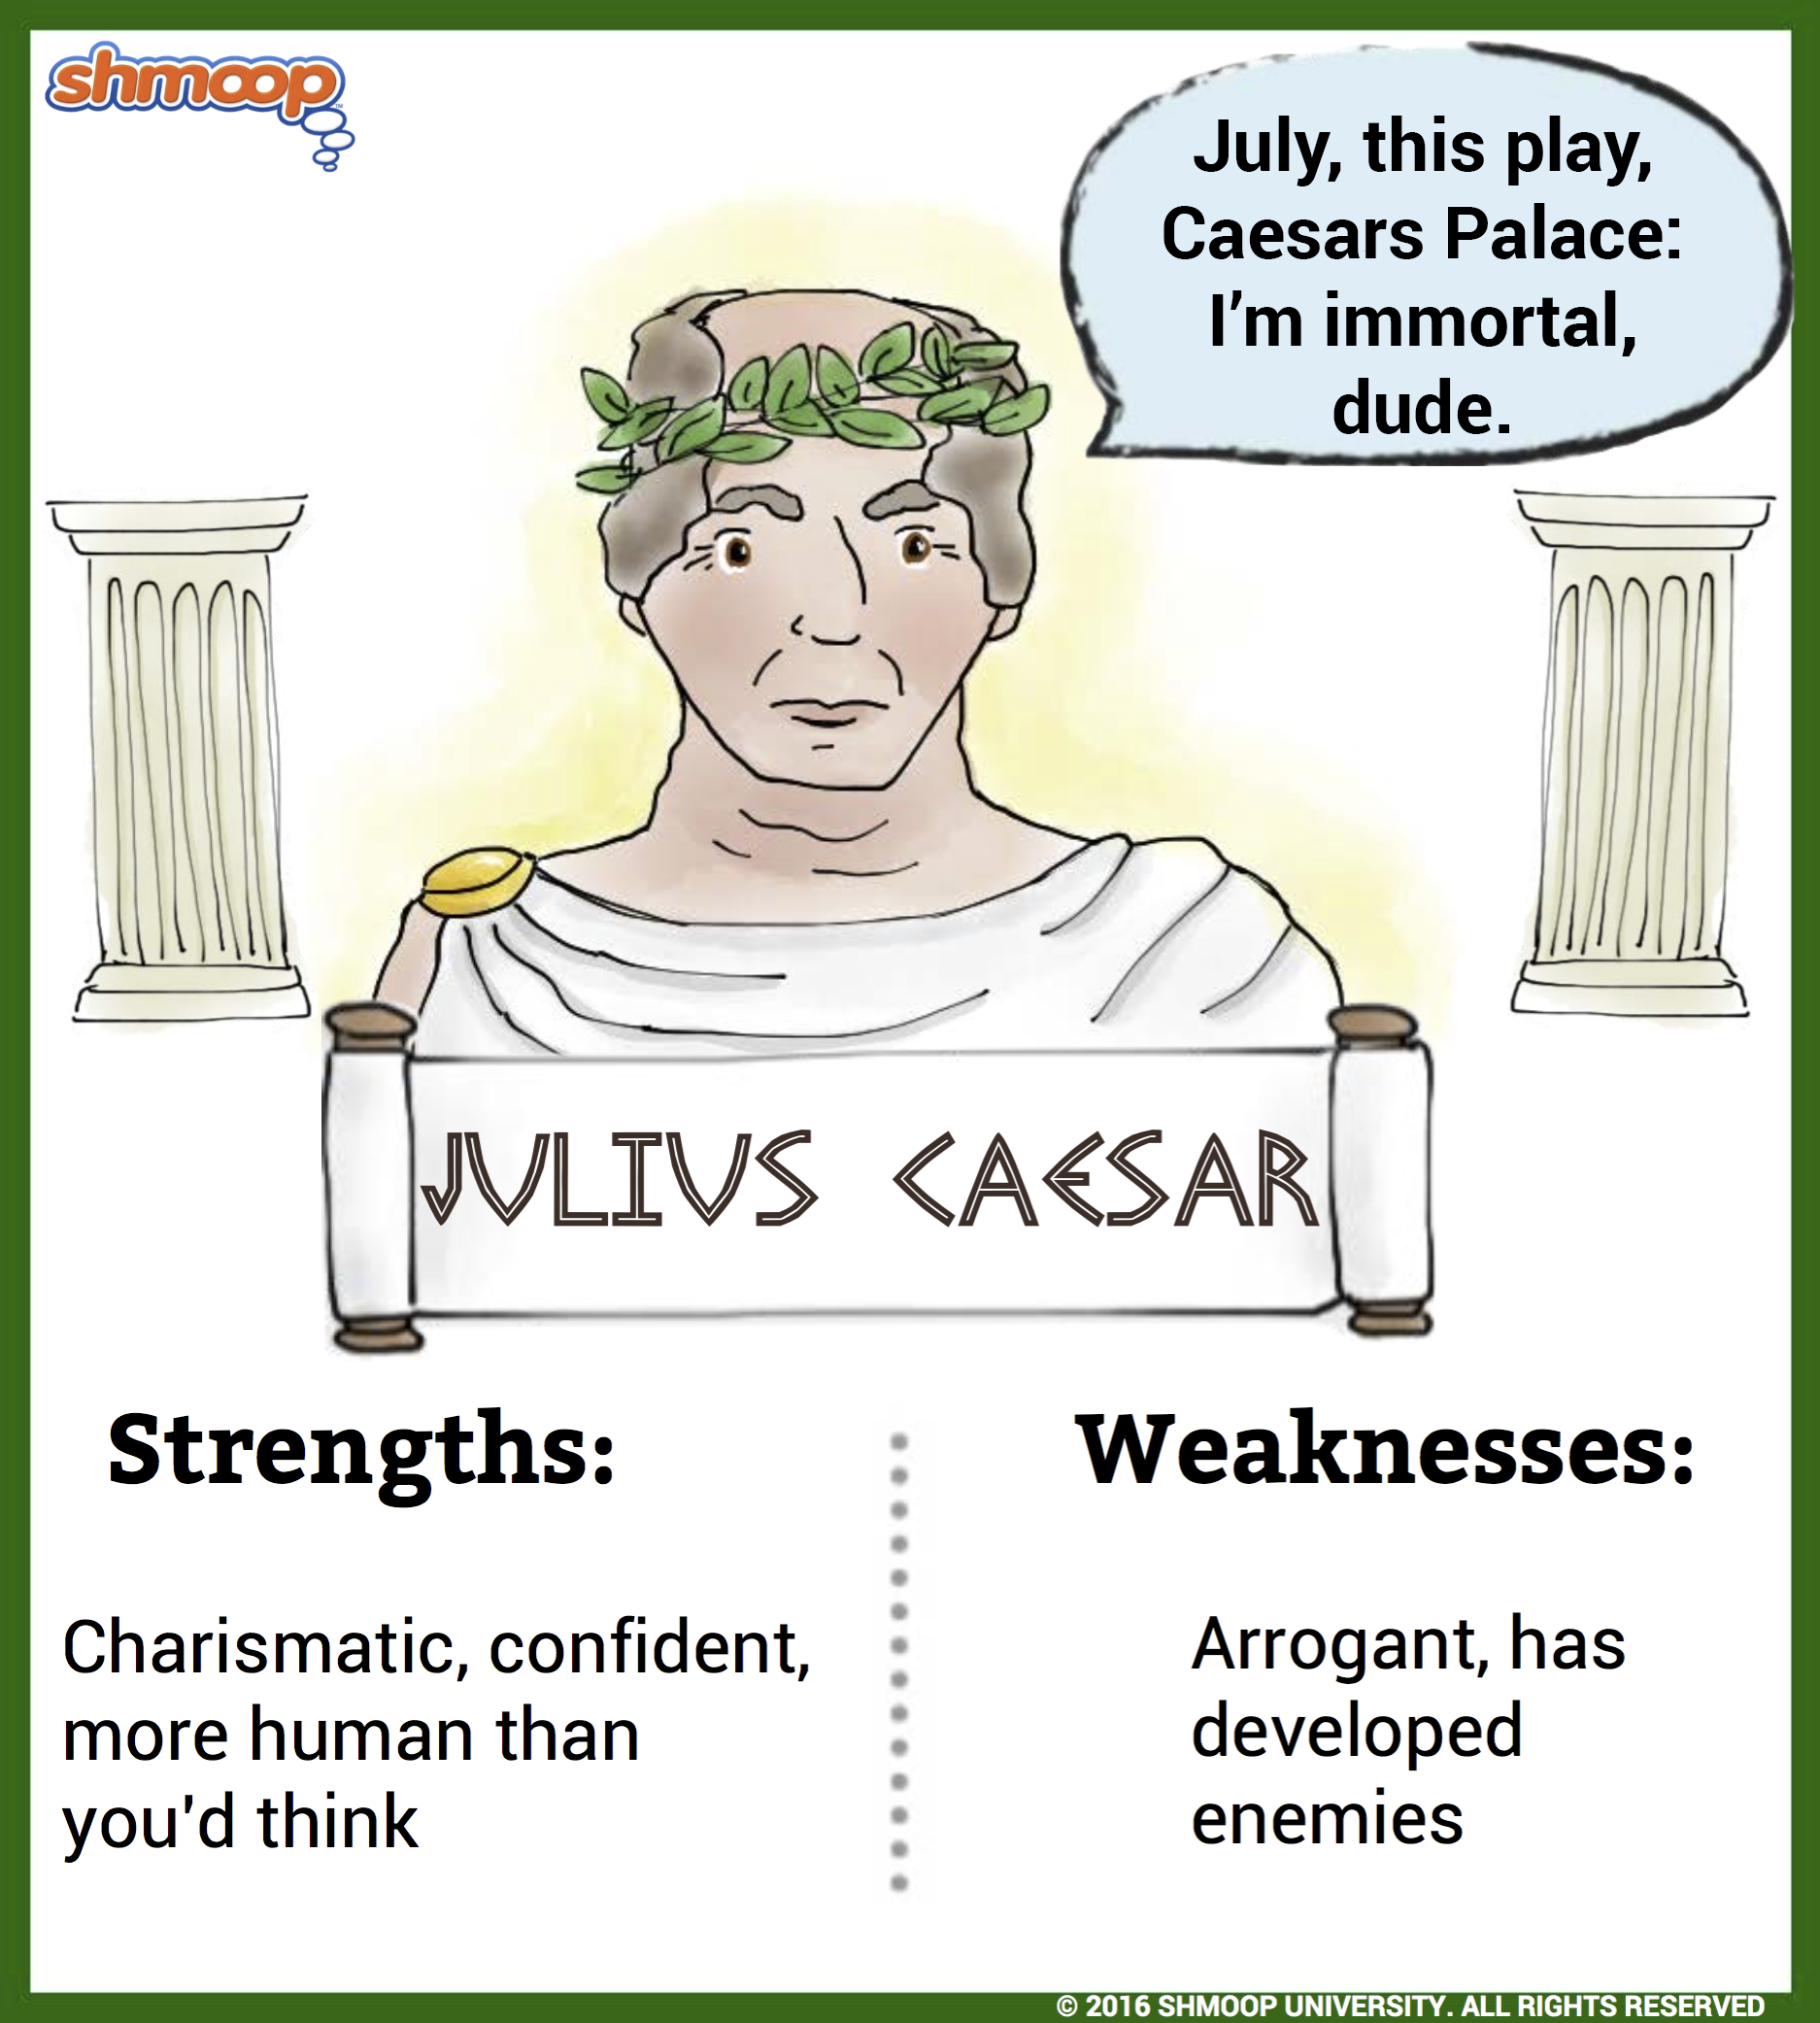 mark antony character traits An analysis of the character of mark antony from shakespeare's roman plays by mw maccallum london: macmillan be a child o' the time, says antony, and he carries out his maxim to the letter.